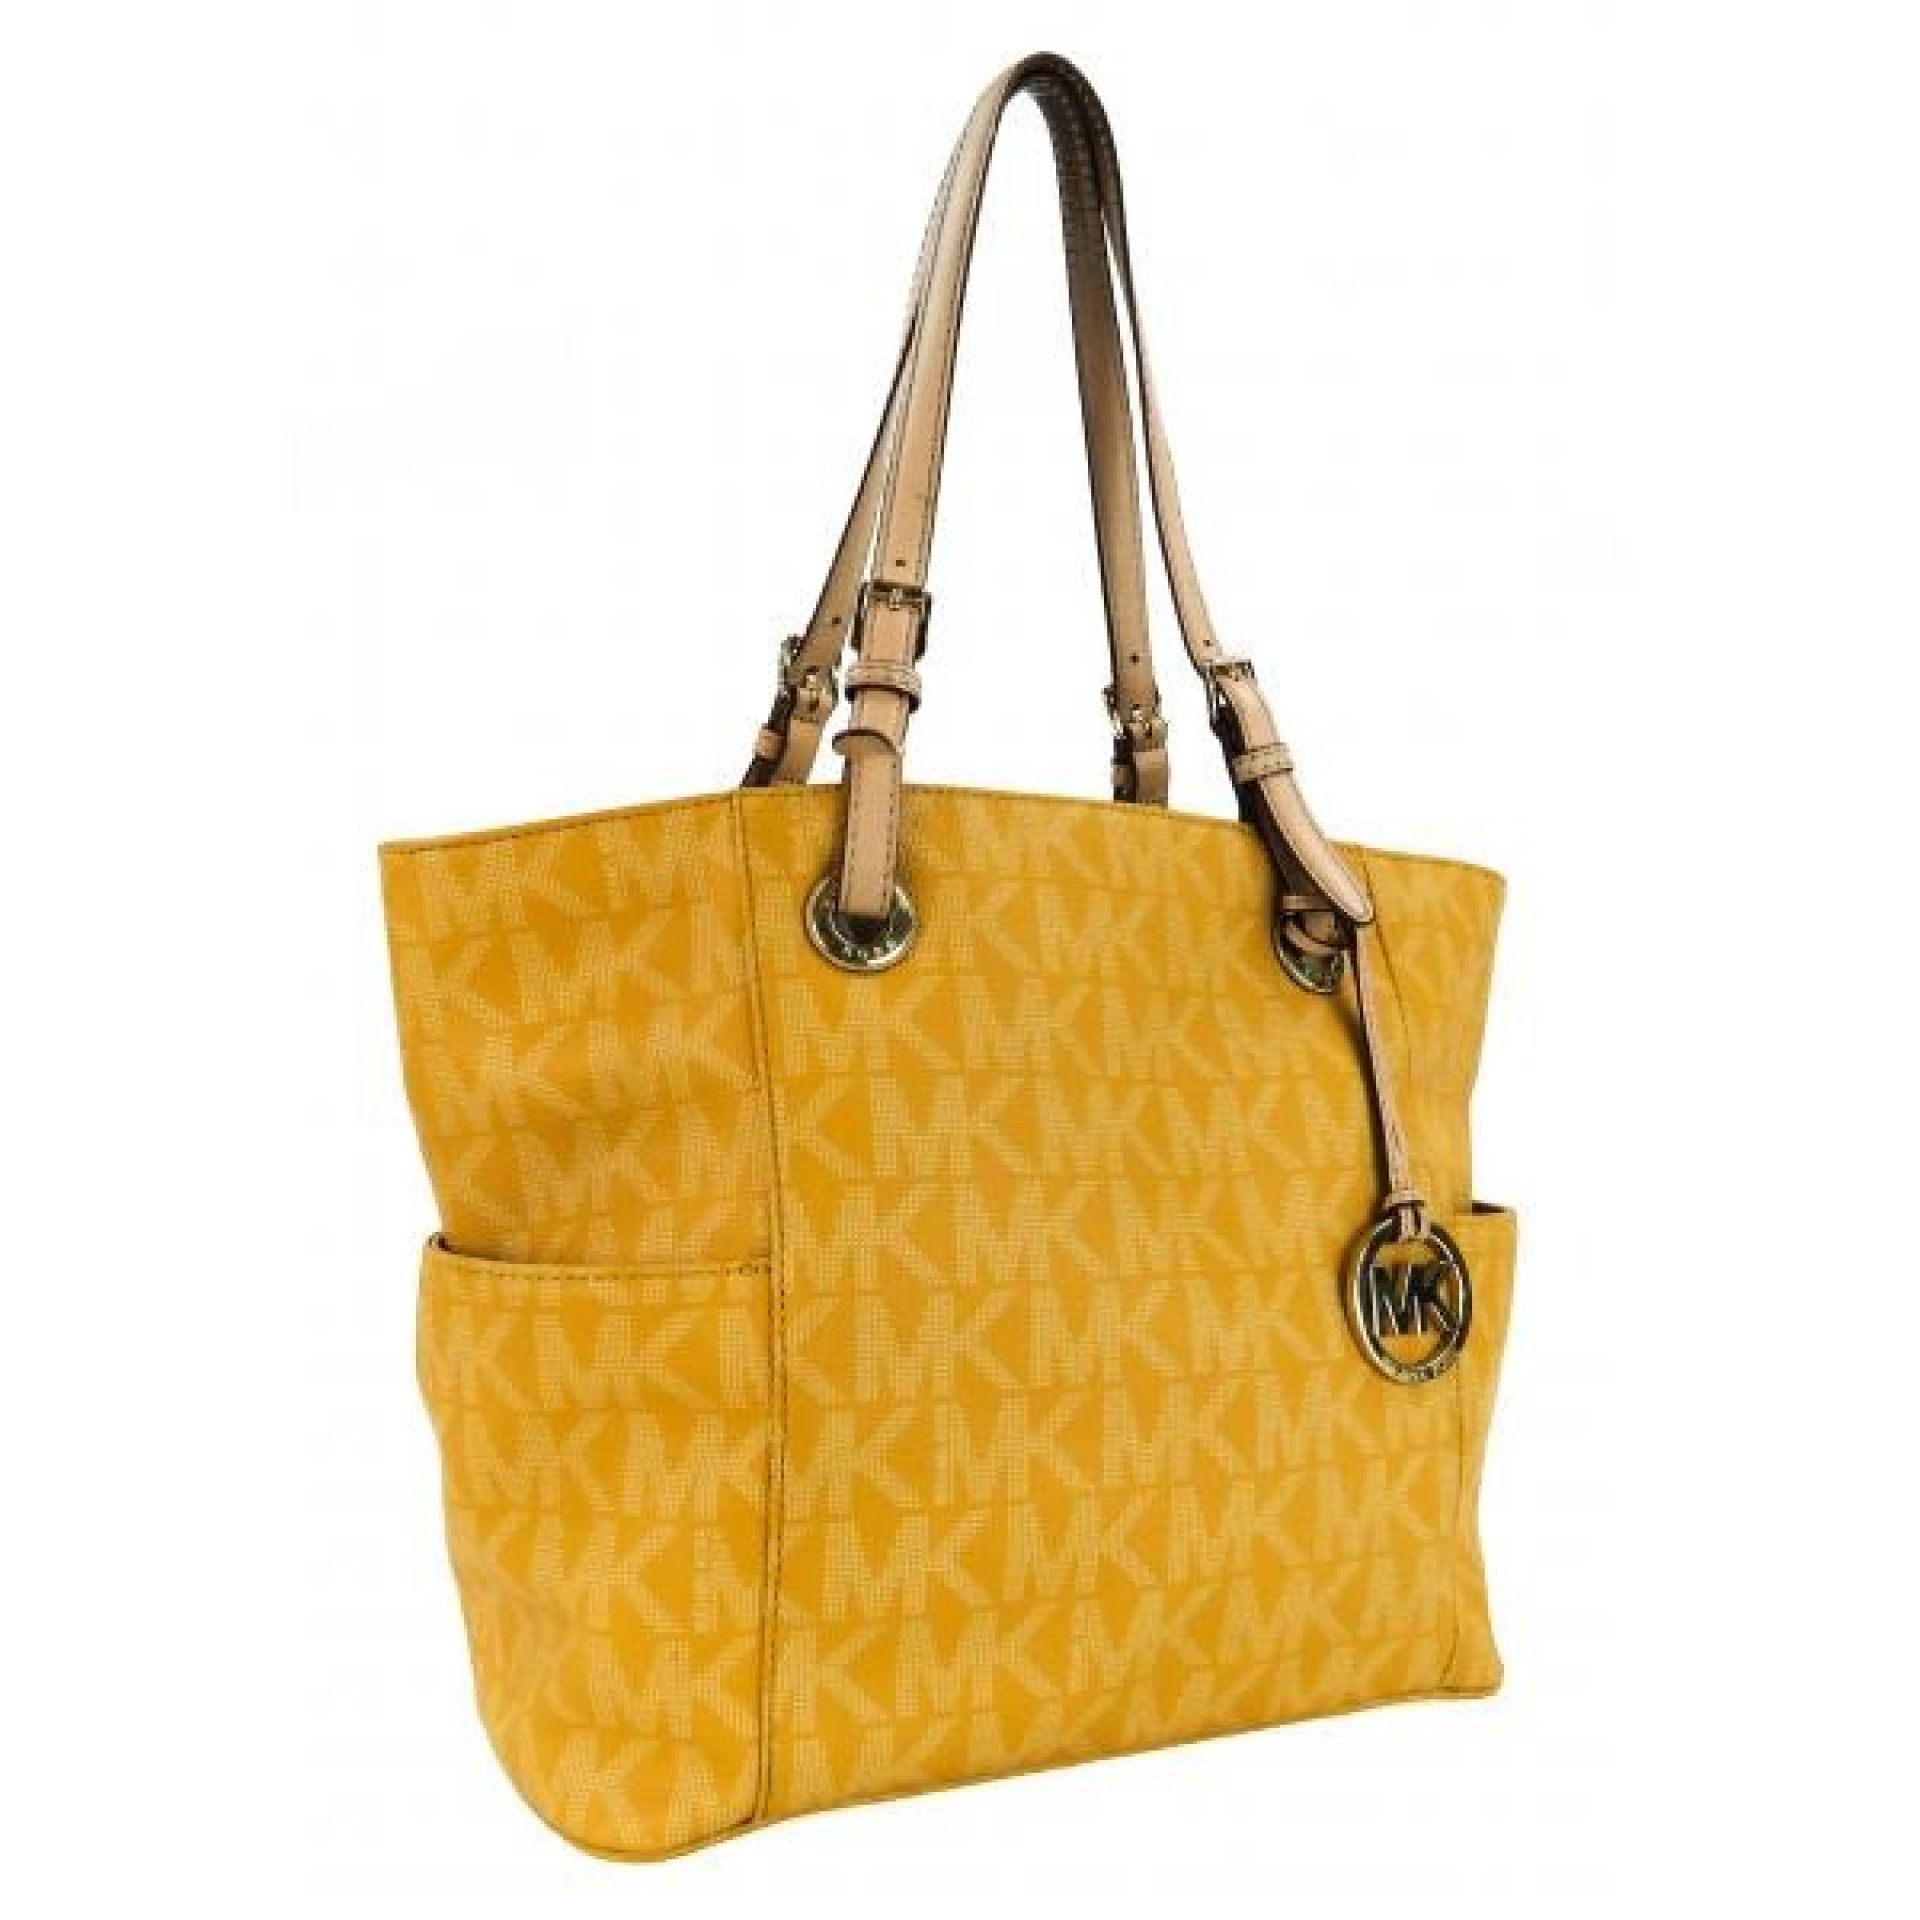 MICHAEL Michael Kors Yellow Monogram Coated Canvas Jet Set Side Pocket Tote Bag